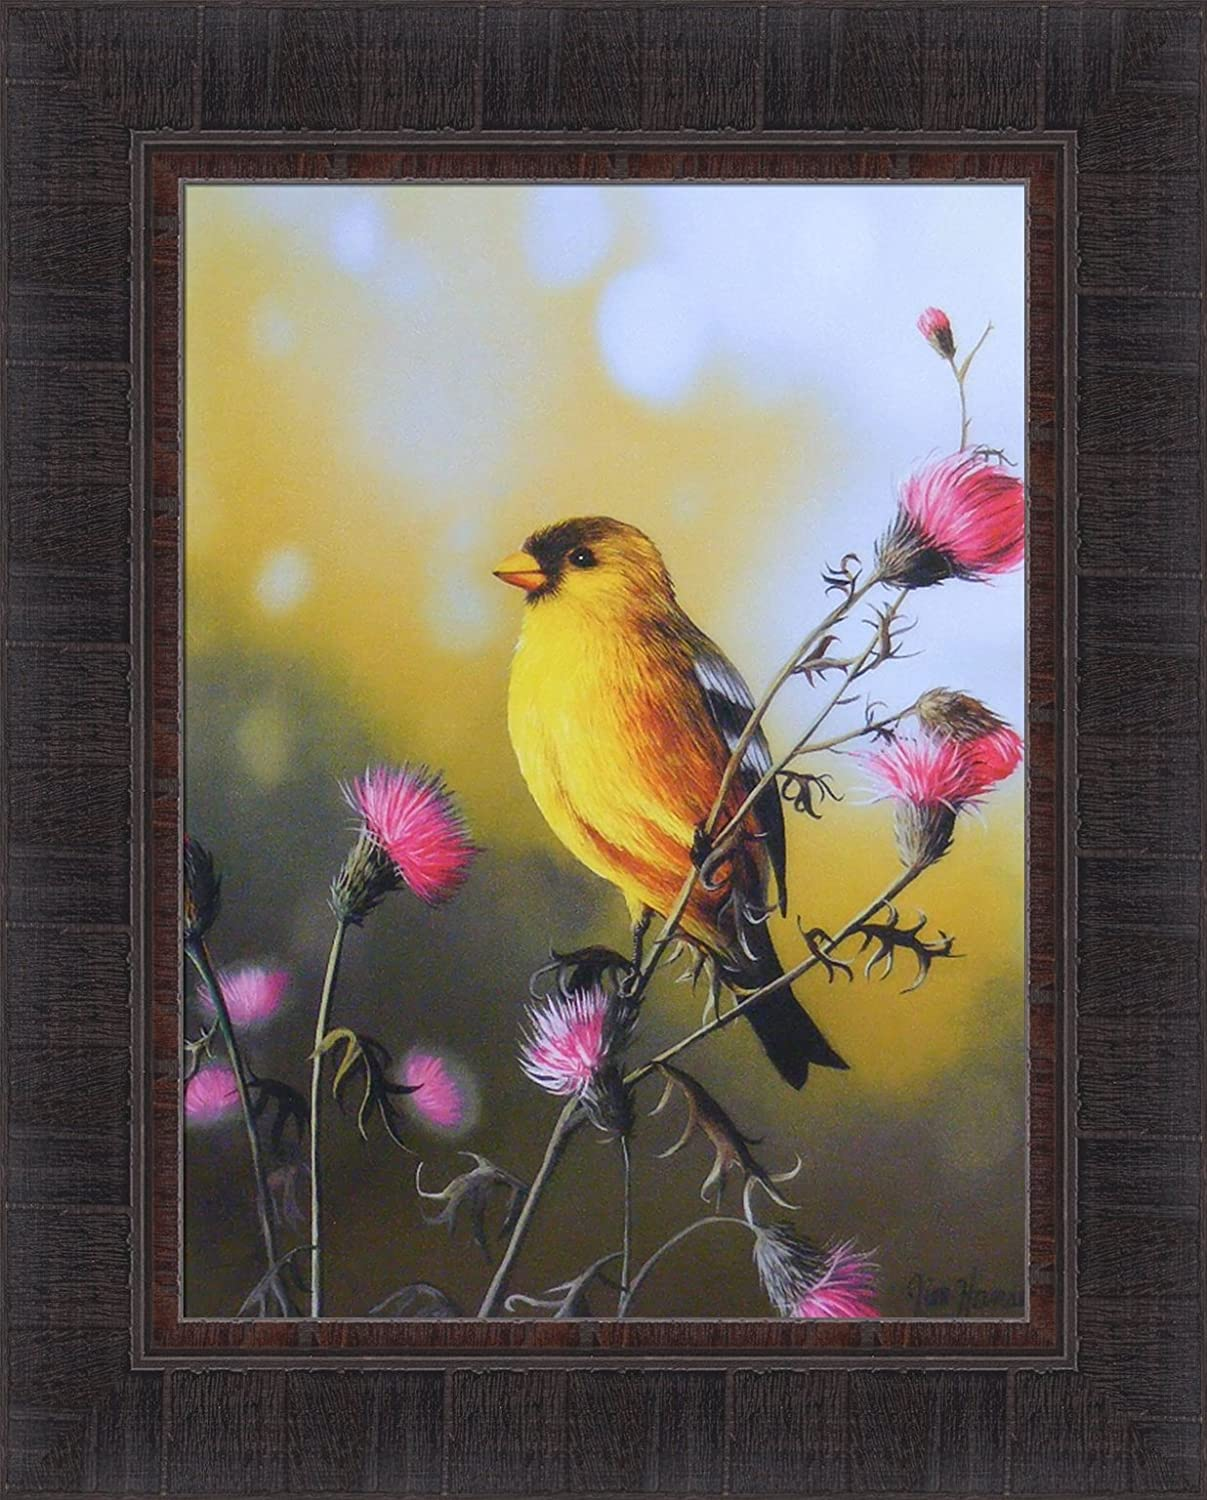 Amazon.com: American Goldfinch by Jim Hansel 17x21 Yellow Finch Bird ...